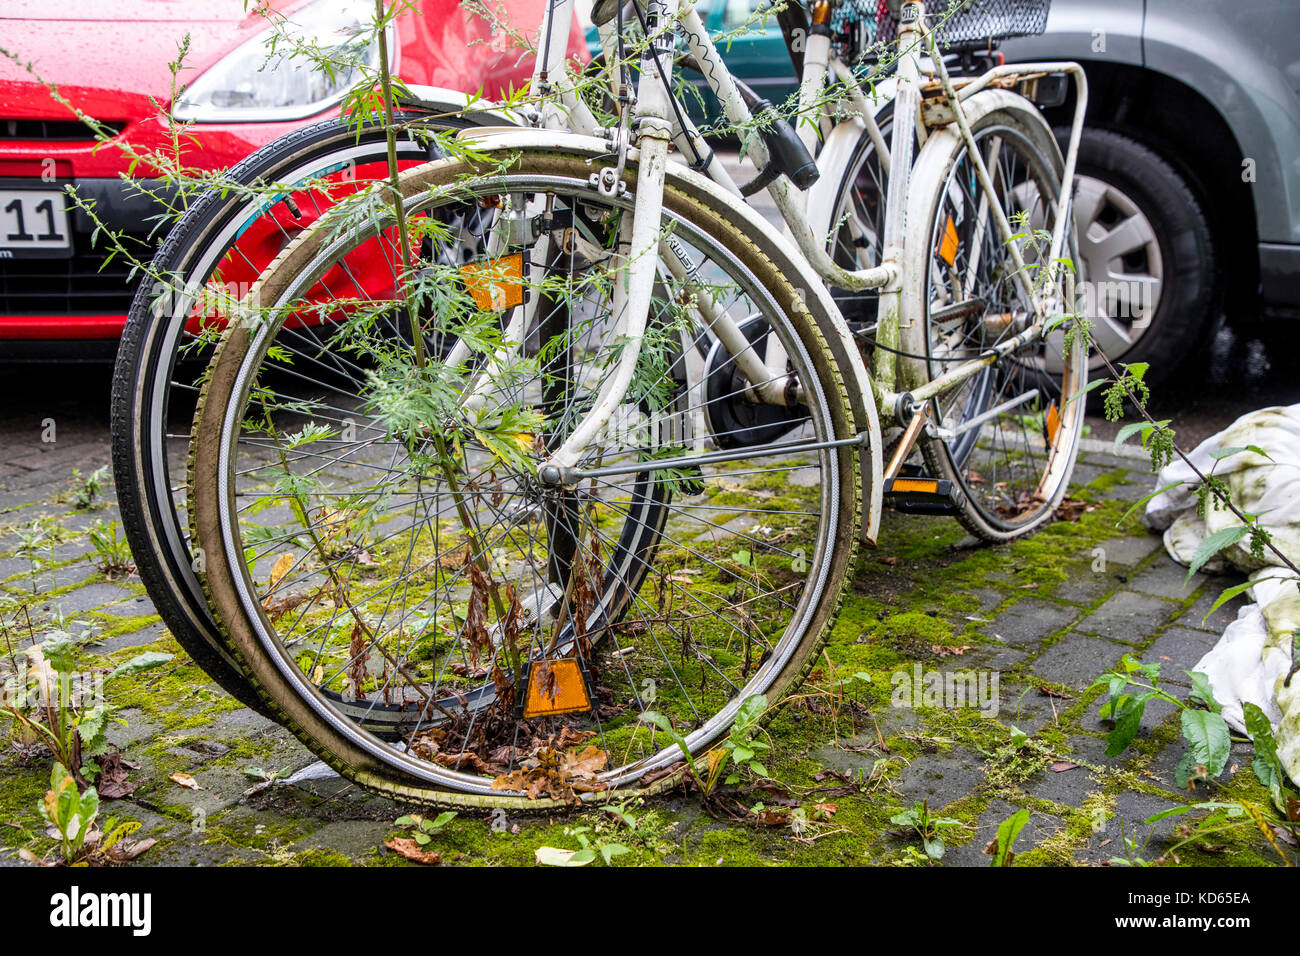 Bicycle parking stands in a city, bikes are overgrown by plants, bicycles parking here for a long time, old, broken, - Stock Image